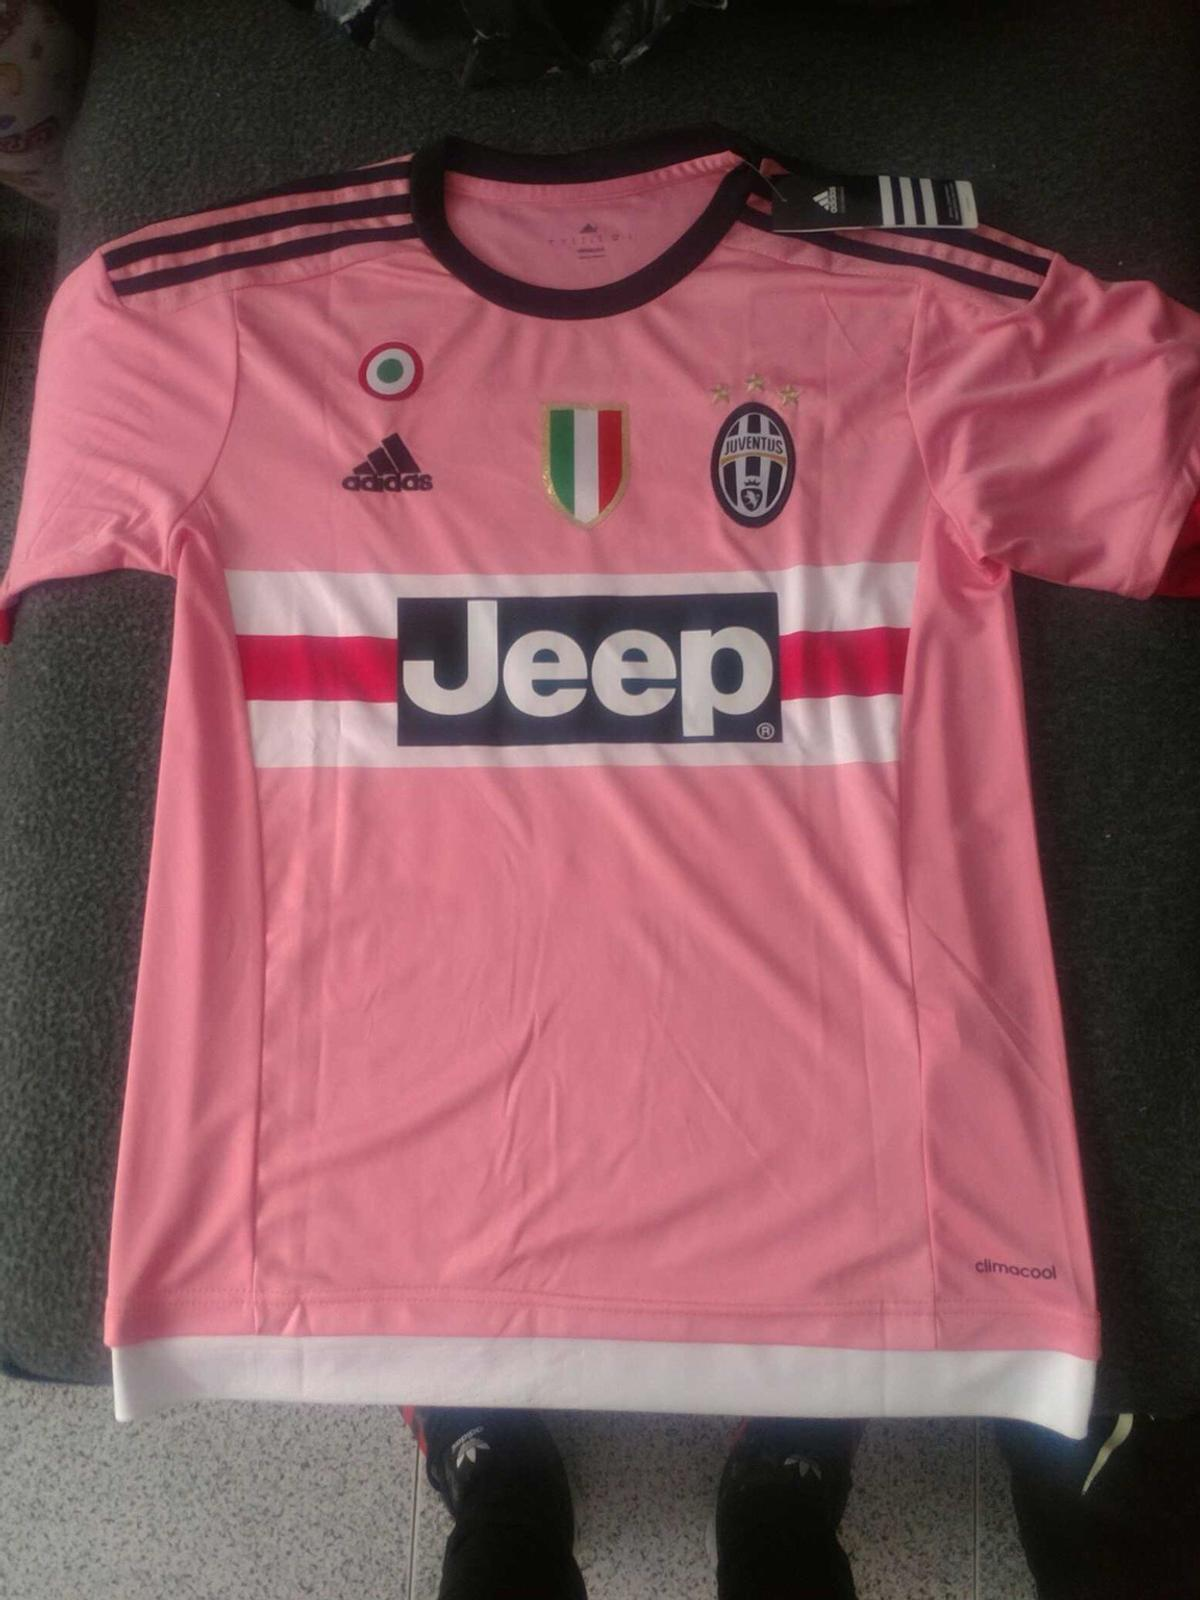 87743c62f82 Juventus Away Kit 2015 16 Pink in NN1 Northampton für 30